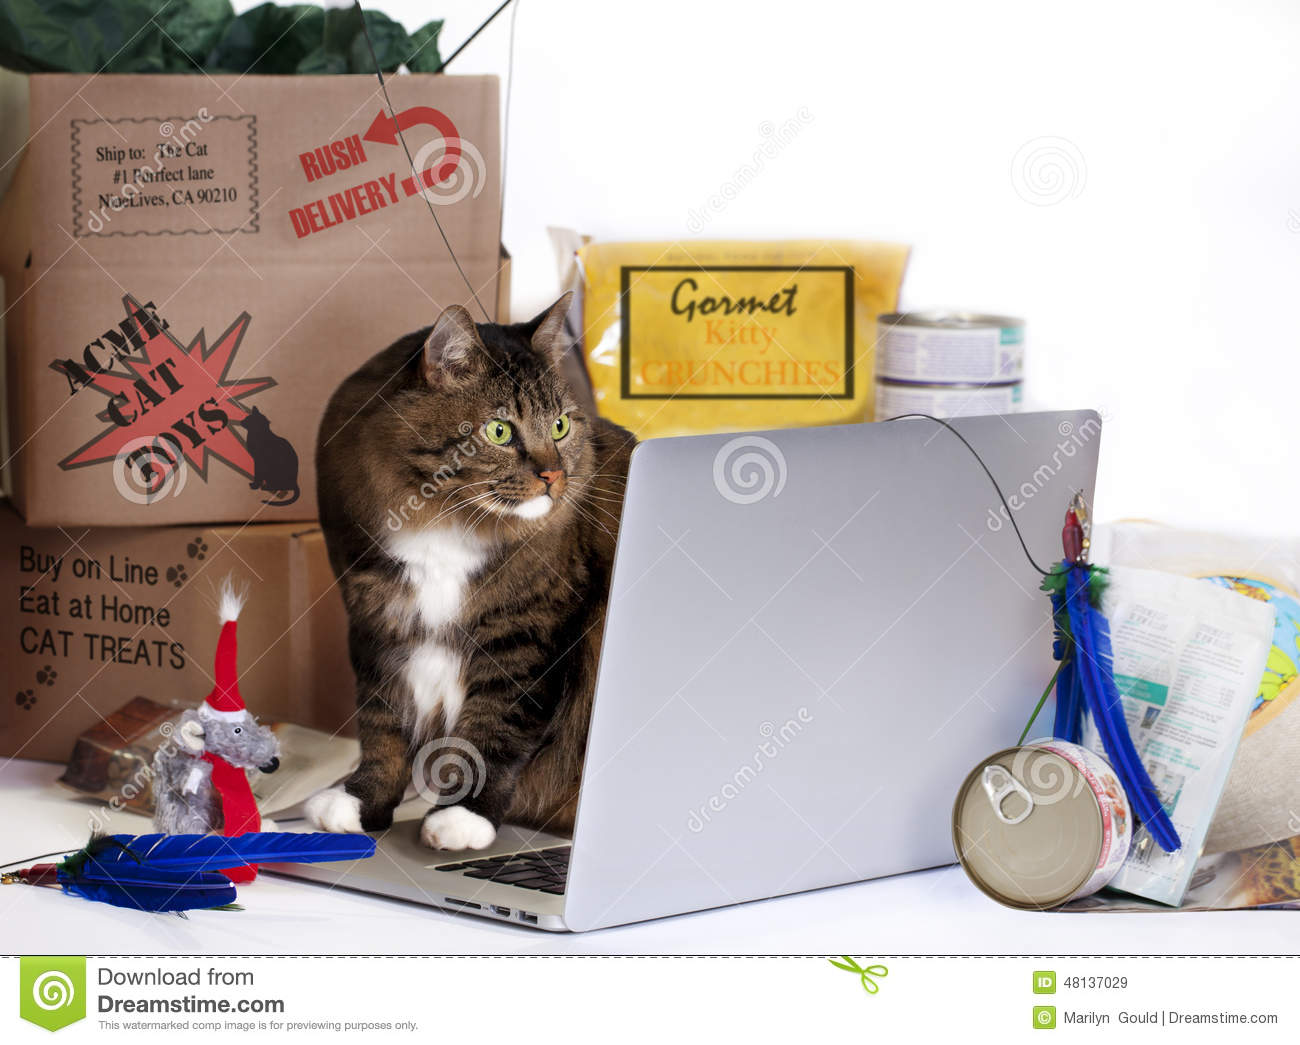 Cat On-Line Shopping Frenzy